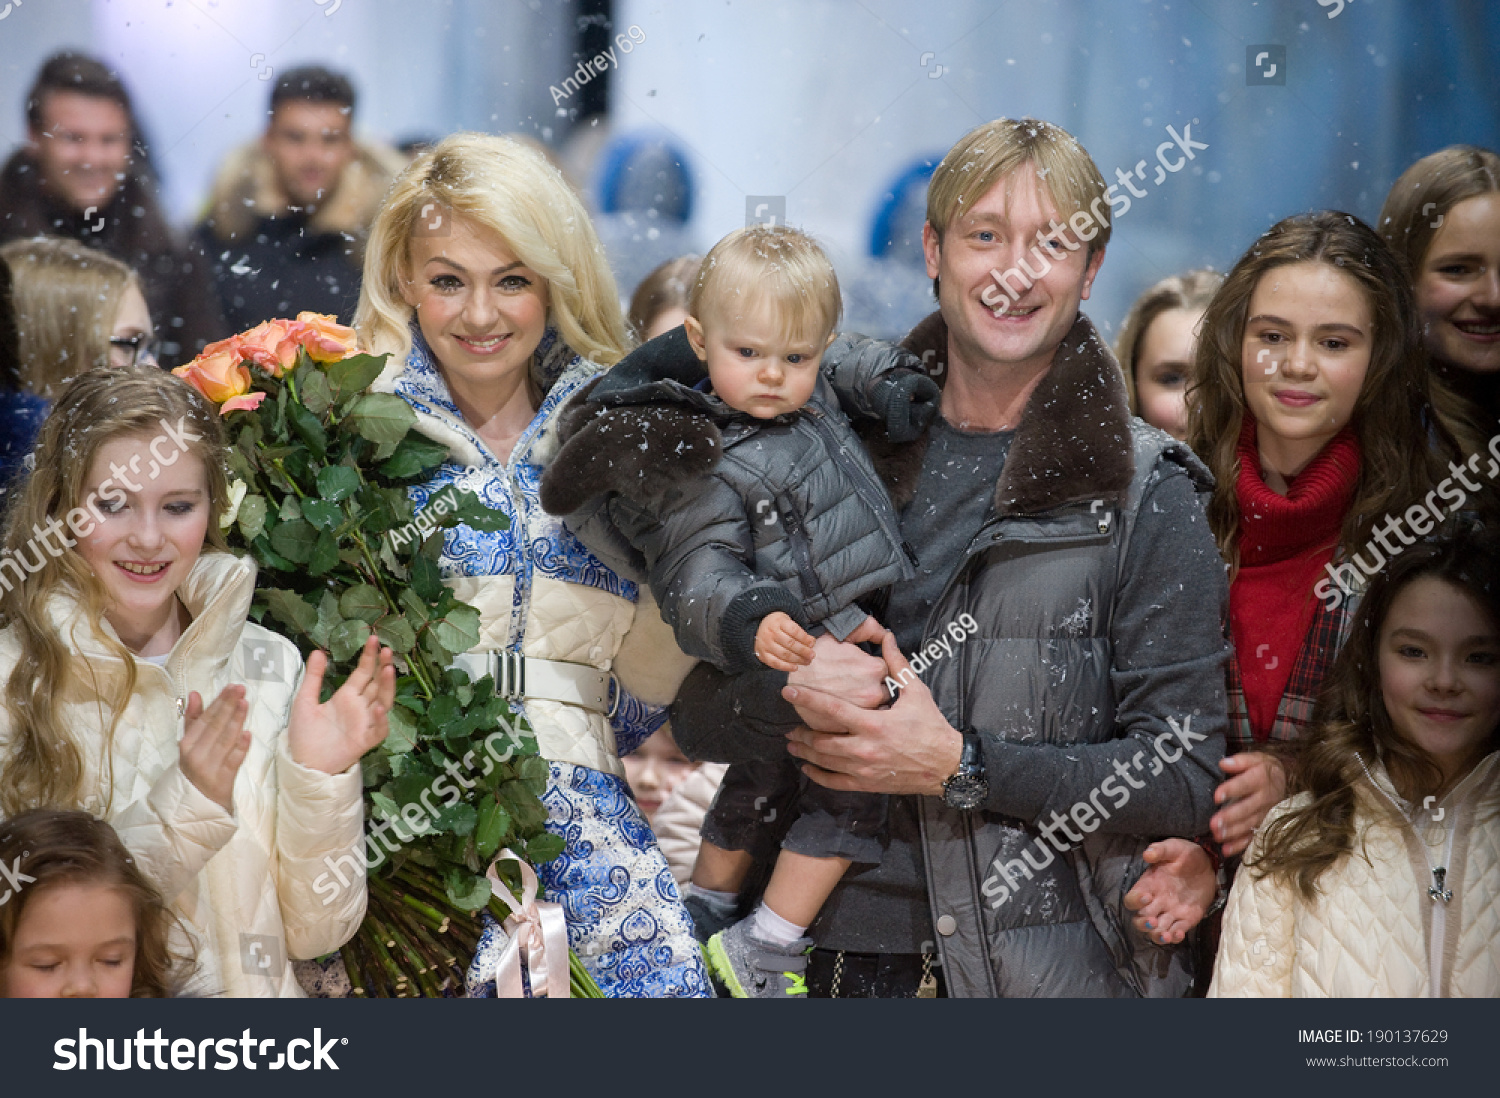 Plushenko and Rudkovskaya will shoot a reality show about their family life 04/12/2017 73